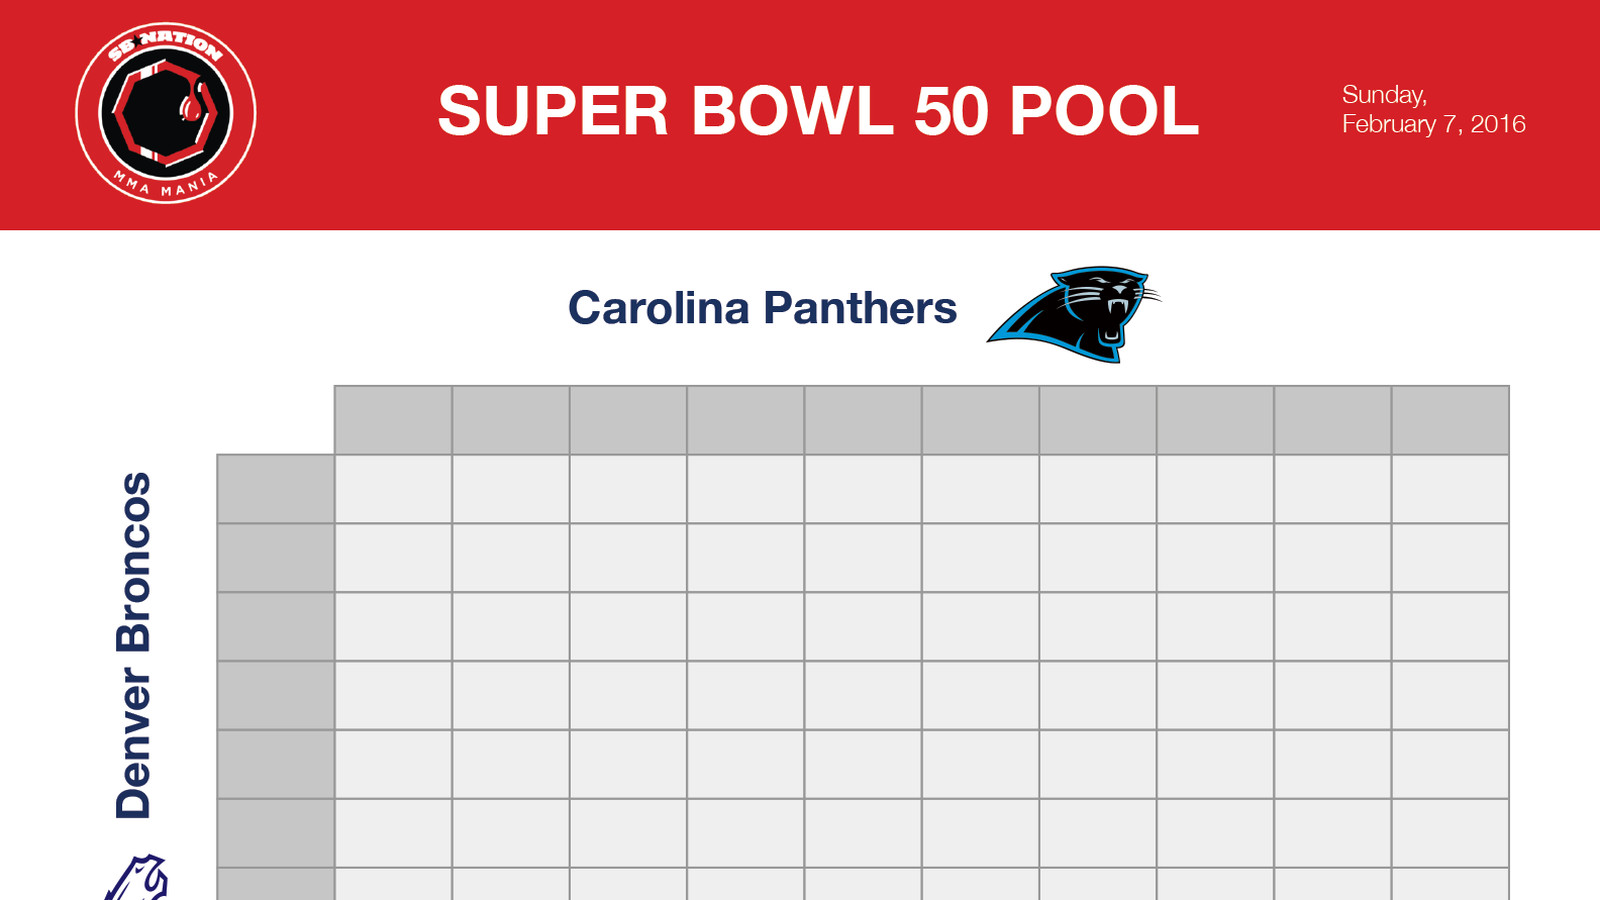 This is a graphic of Superb Super Bowl Grid Printable